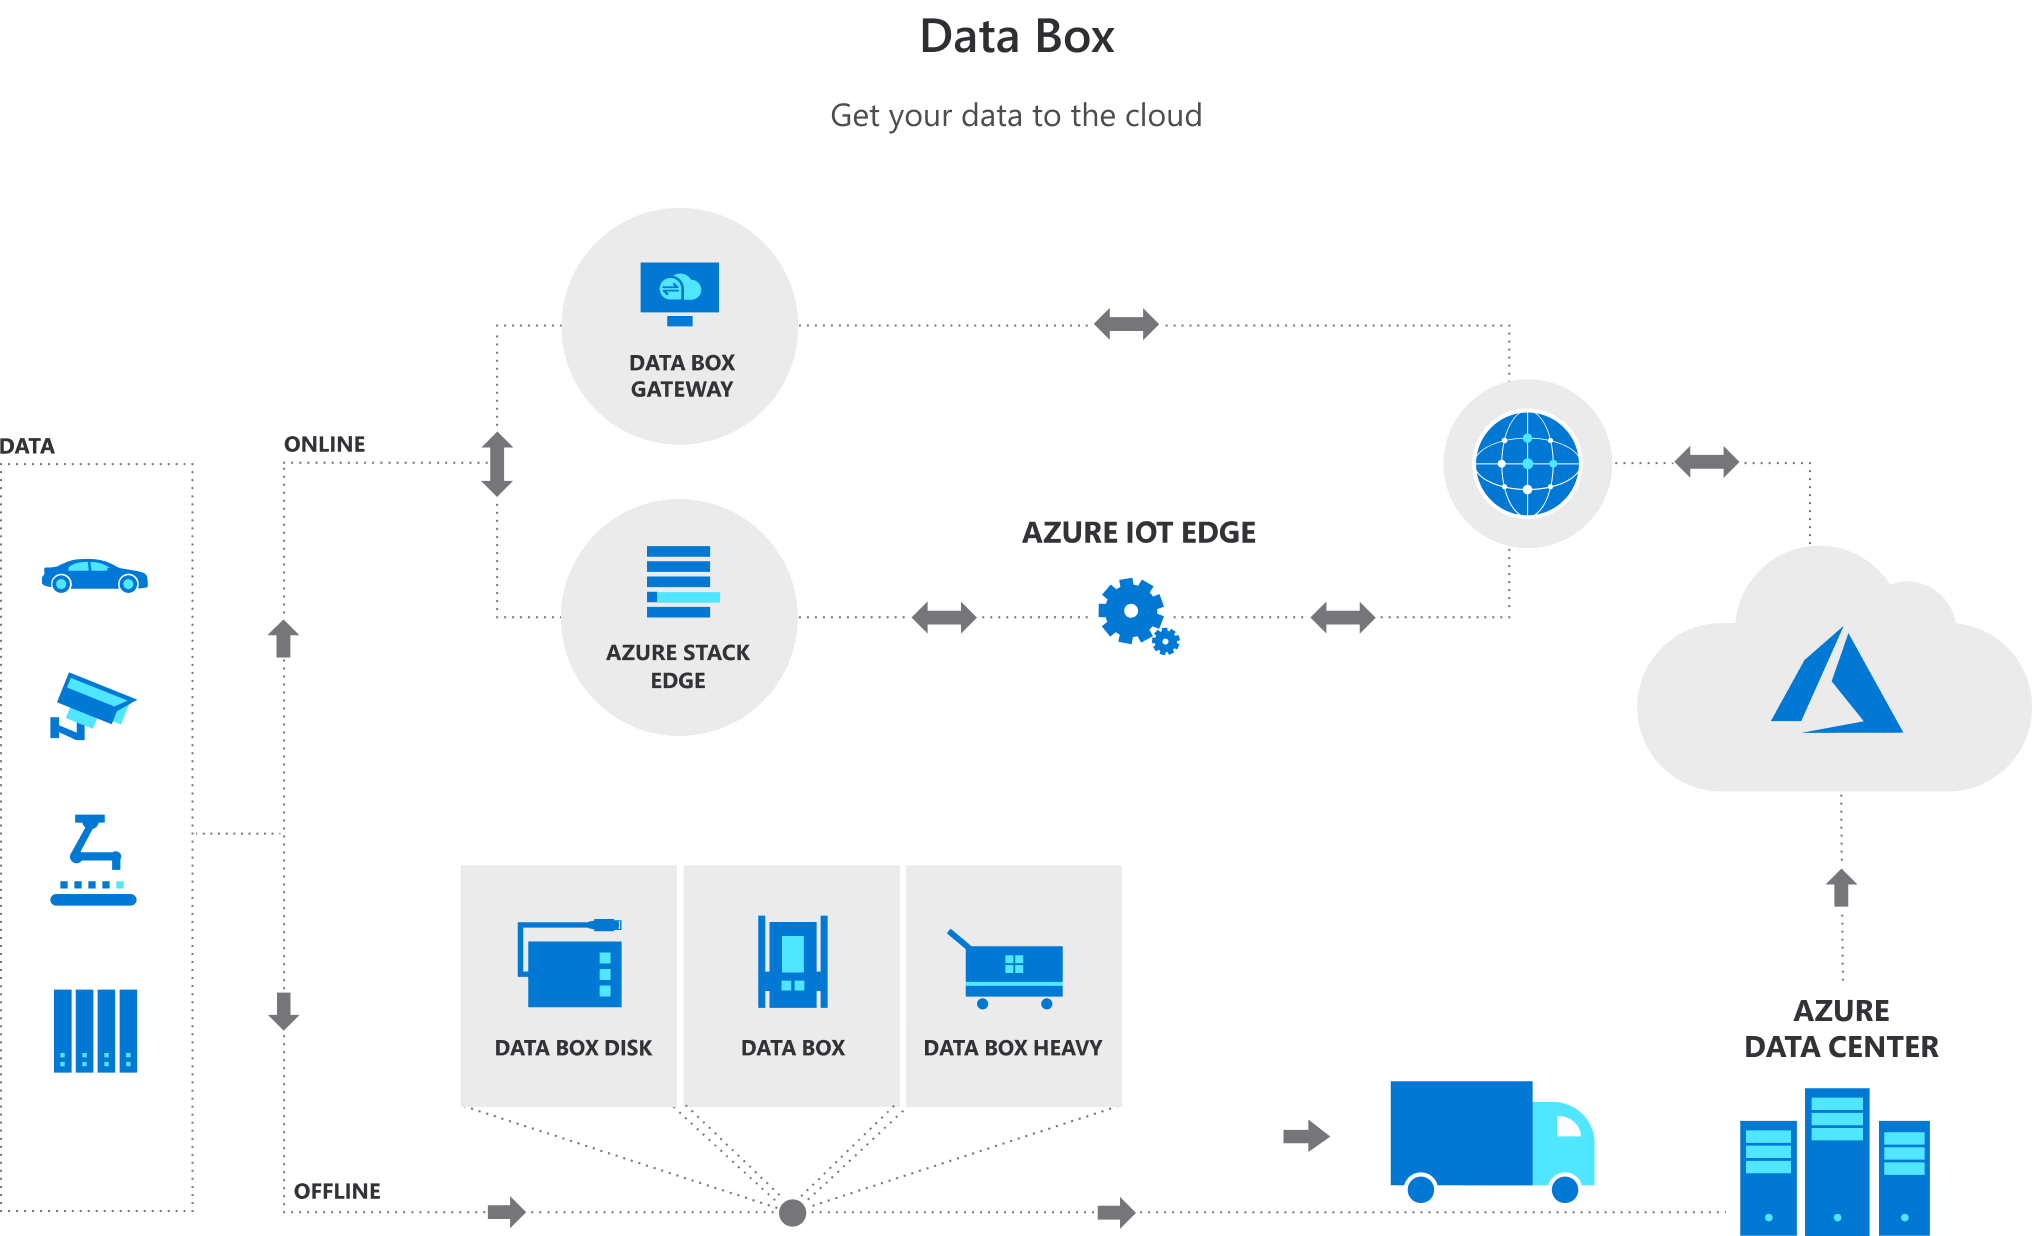 Data Box - Get your data to the cloud using Azure Stack Edge